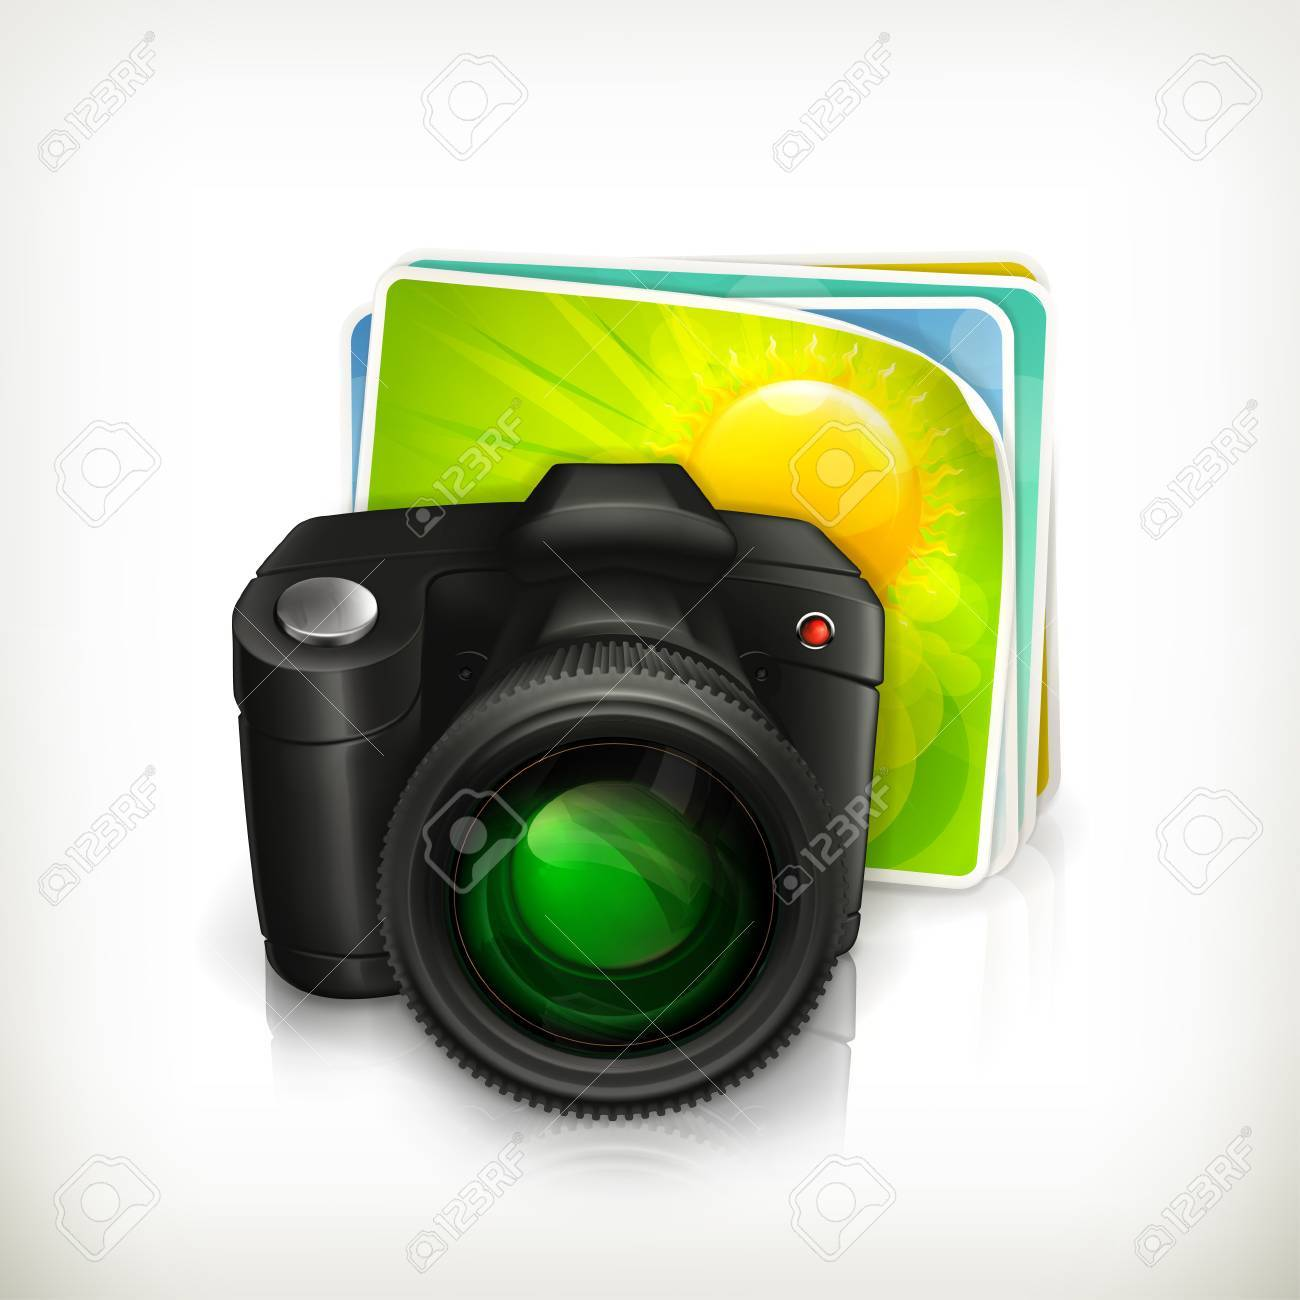 Photos and camera illustration icon Stock Vector - 13667139